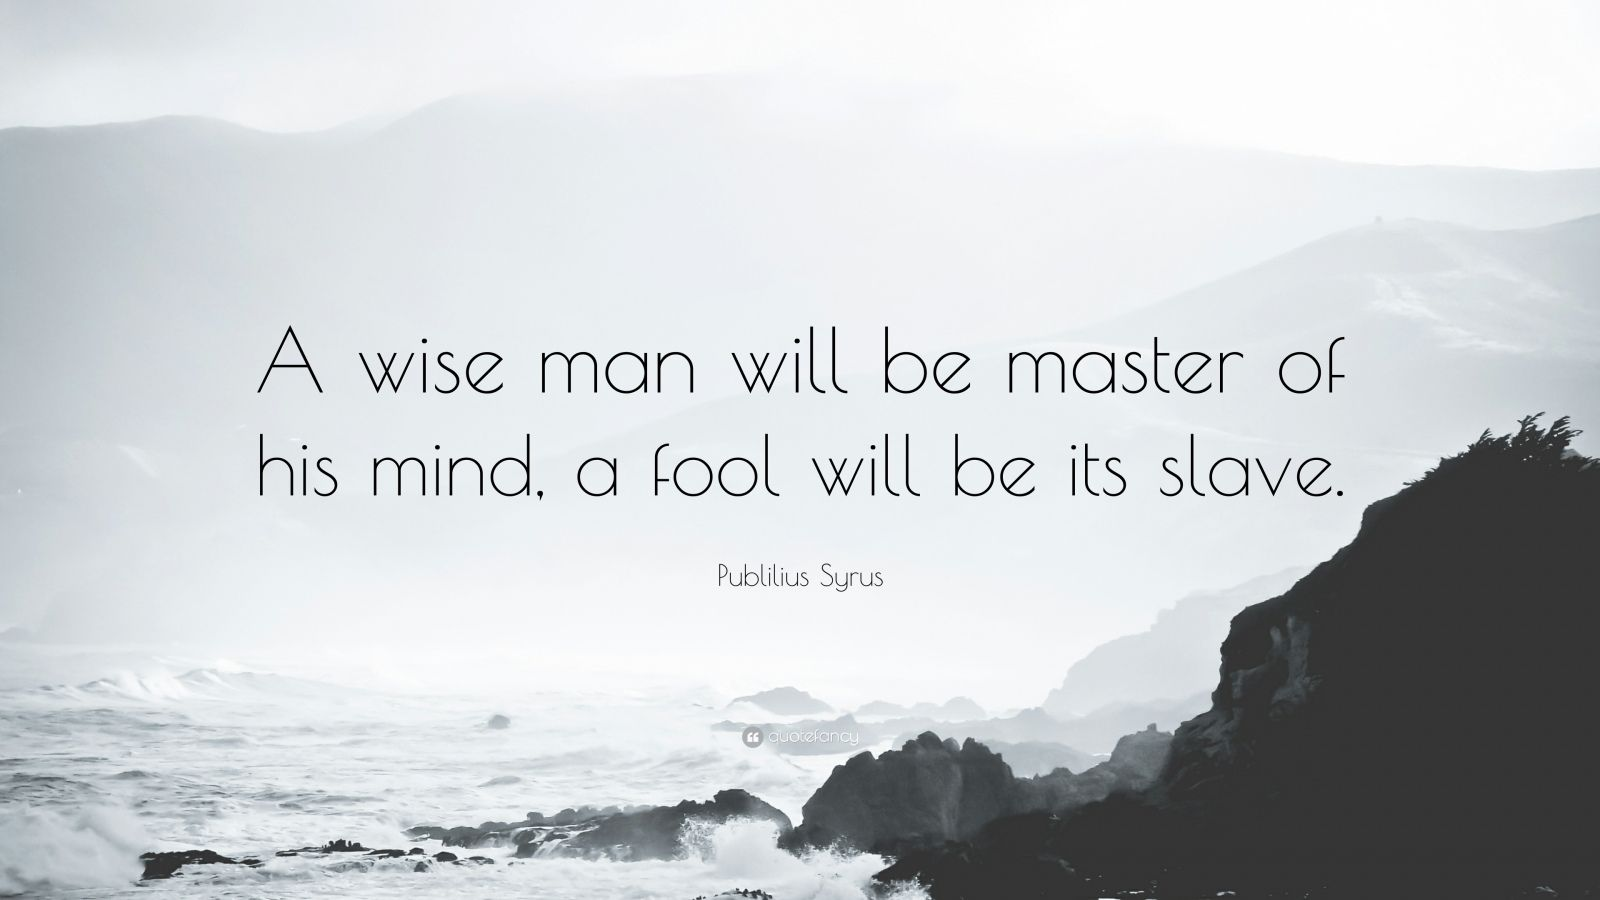 "Thought Provoking Quotes: ""A wise man will be master of his mind, a fool will be its slave."" — Publilius Syrus"